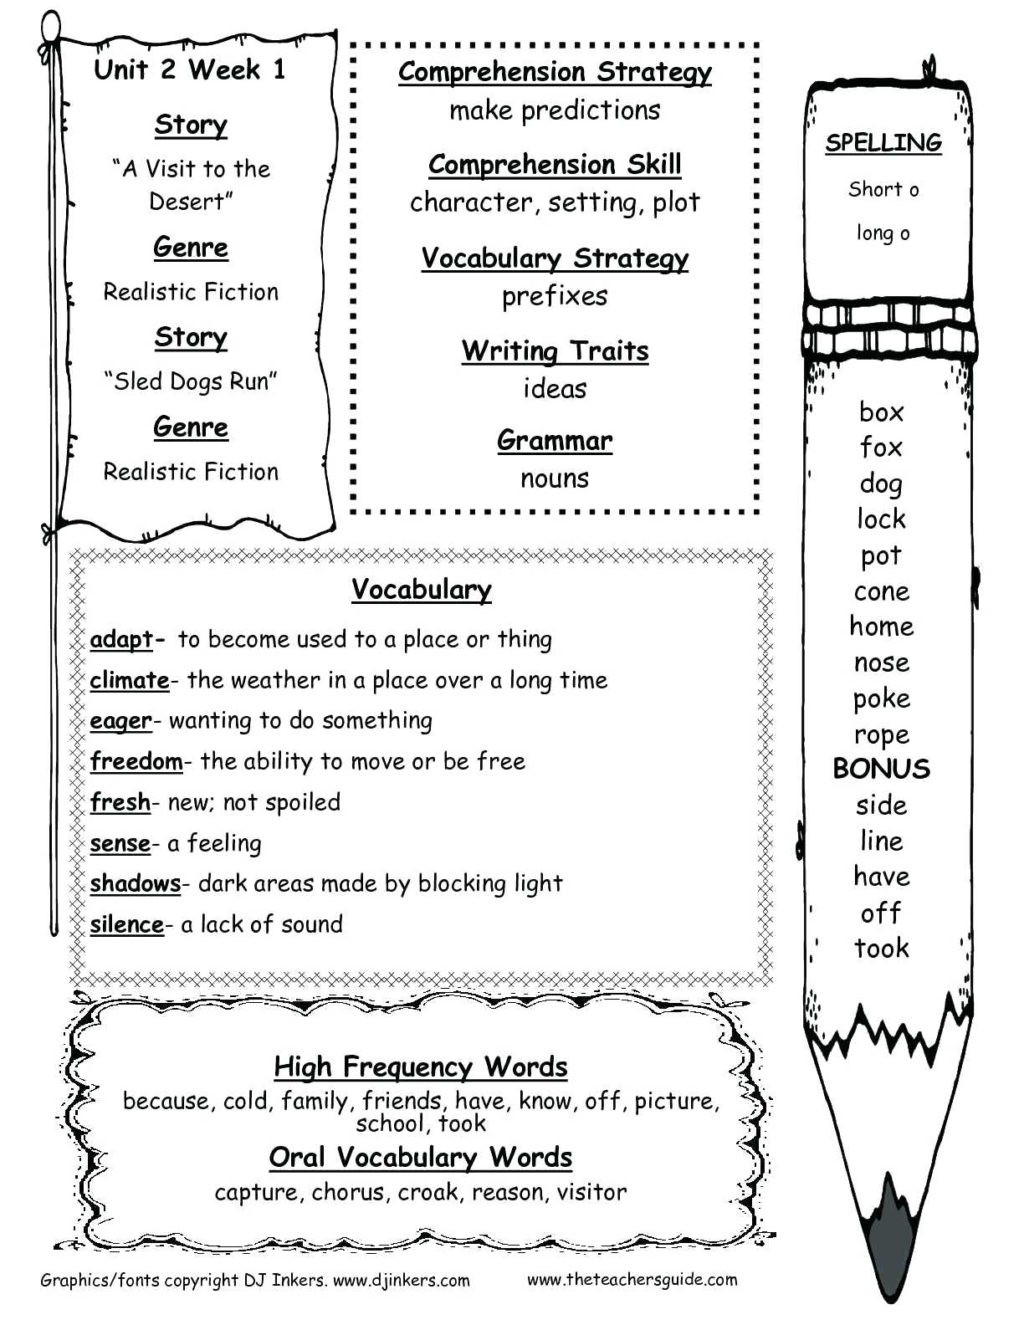 Character Traits Worksheet 2nd Grade Worksheet Vocabulary for 2nd Grade Barka